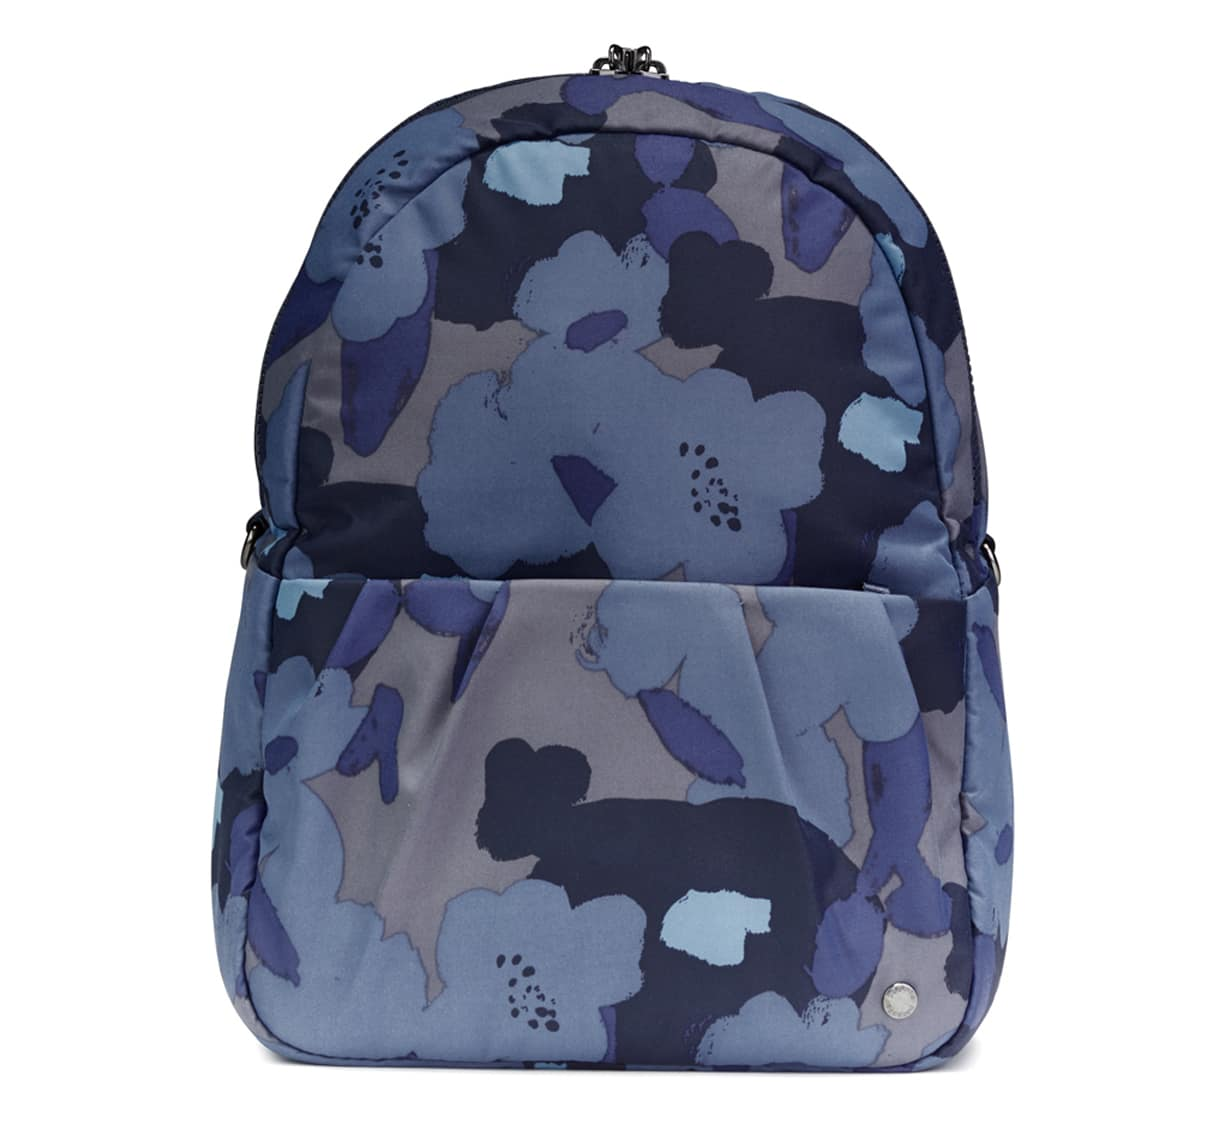 Pacsafe - Citysafe CX Covertible Backpack 8 L for Women (Blue Orchid)